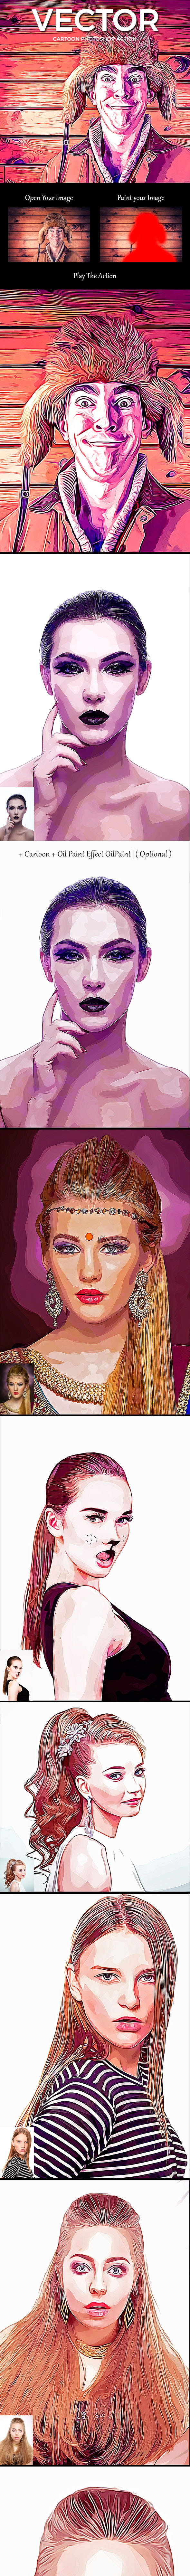 Vector Cartoon Photoshop Action - Photo Effects Actions